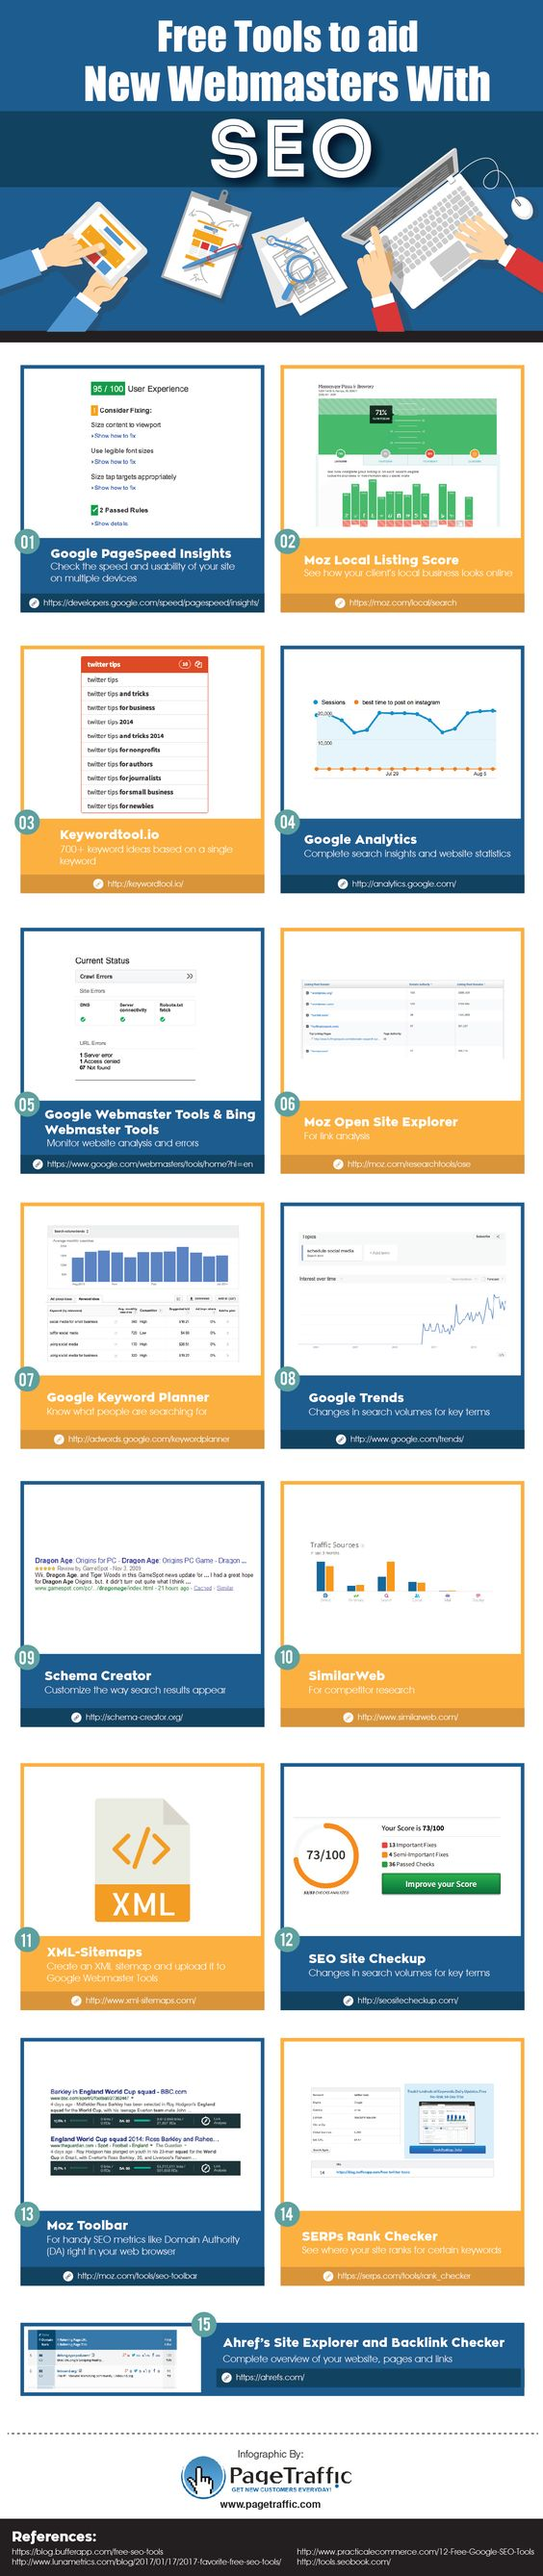 Free Tools For SEO and Local SEO